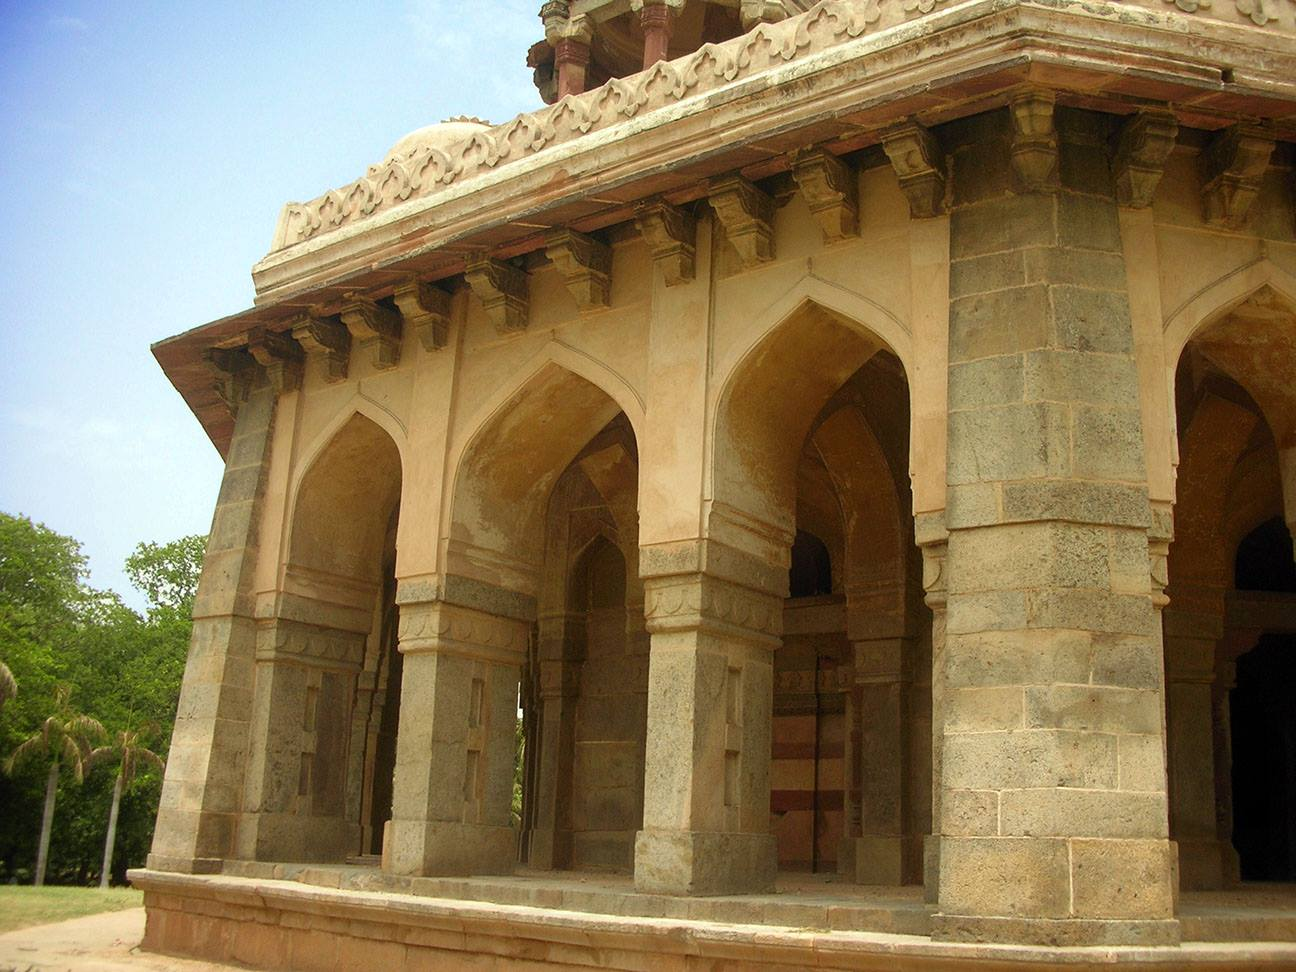 Each facade is pierced by three identical arches, with each external angle of the tomb being reinforced by sloping buttresses.